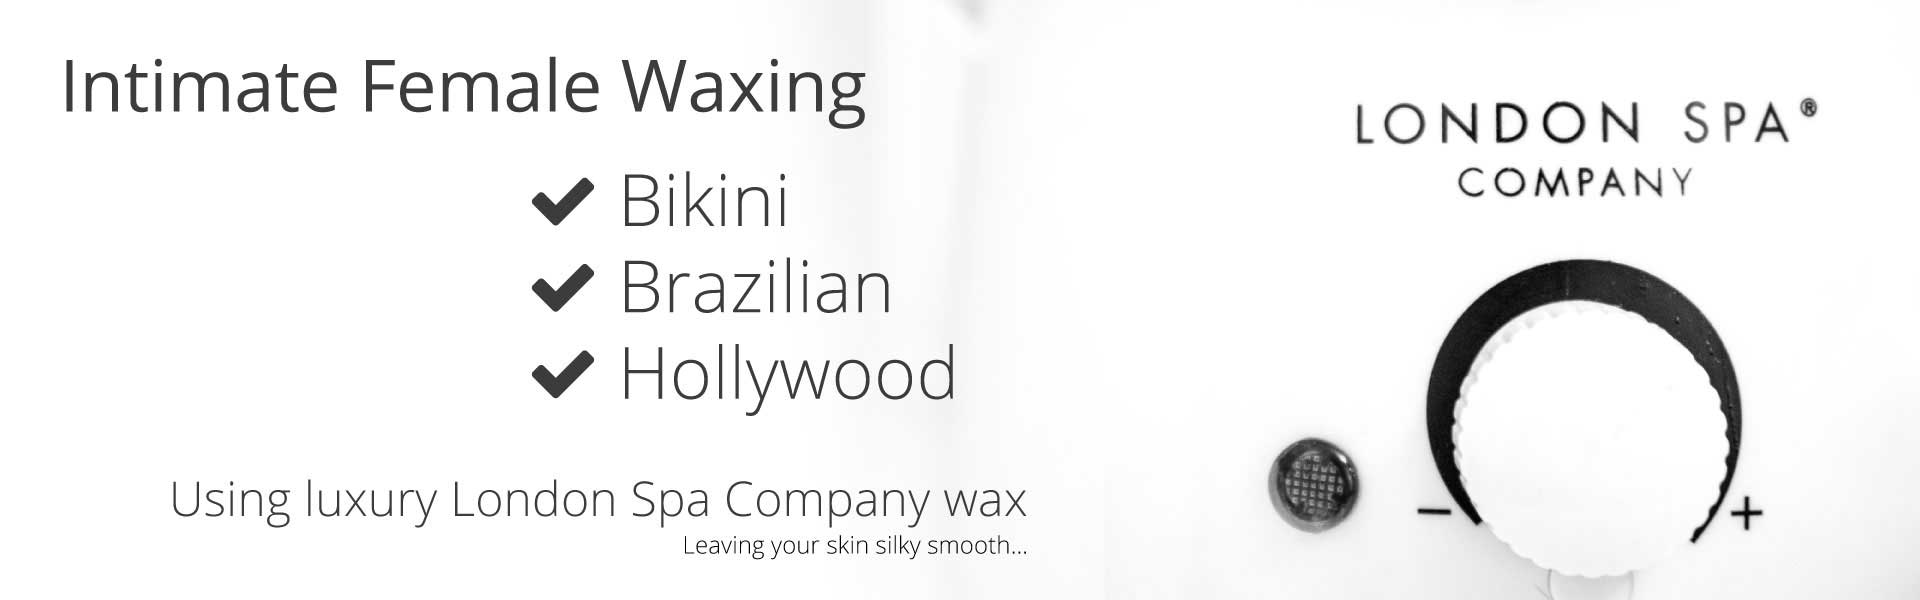 Derbyshire Beauty salon offering female intimate waxing